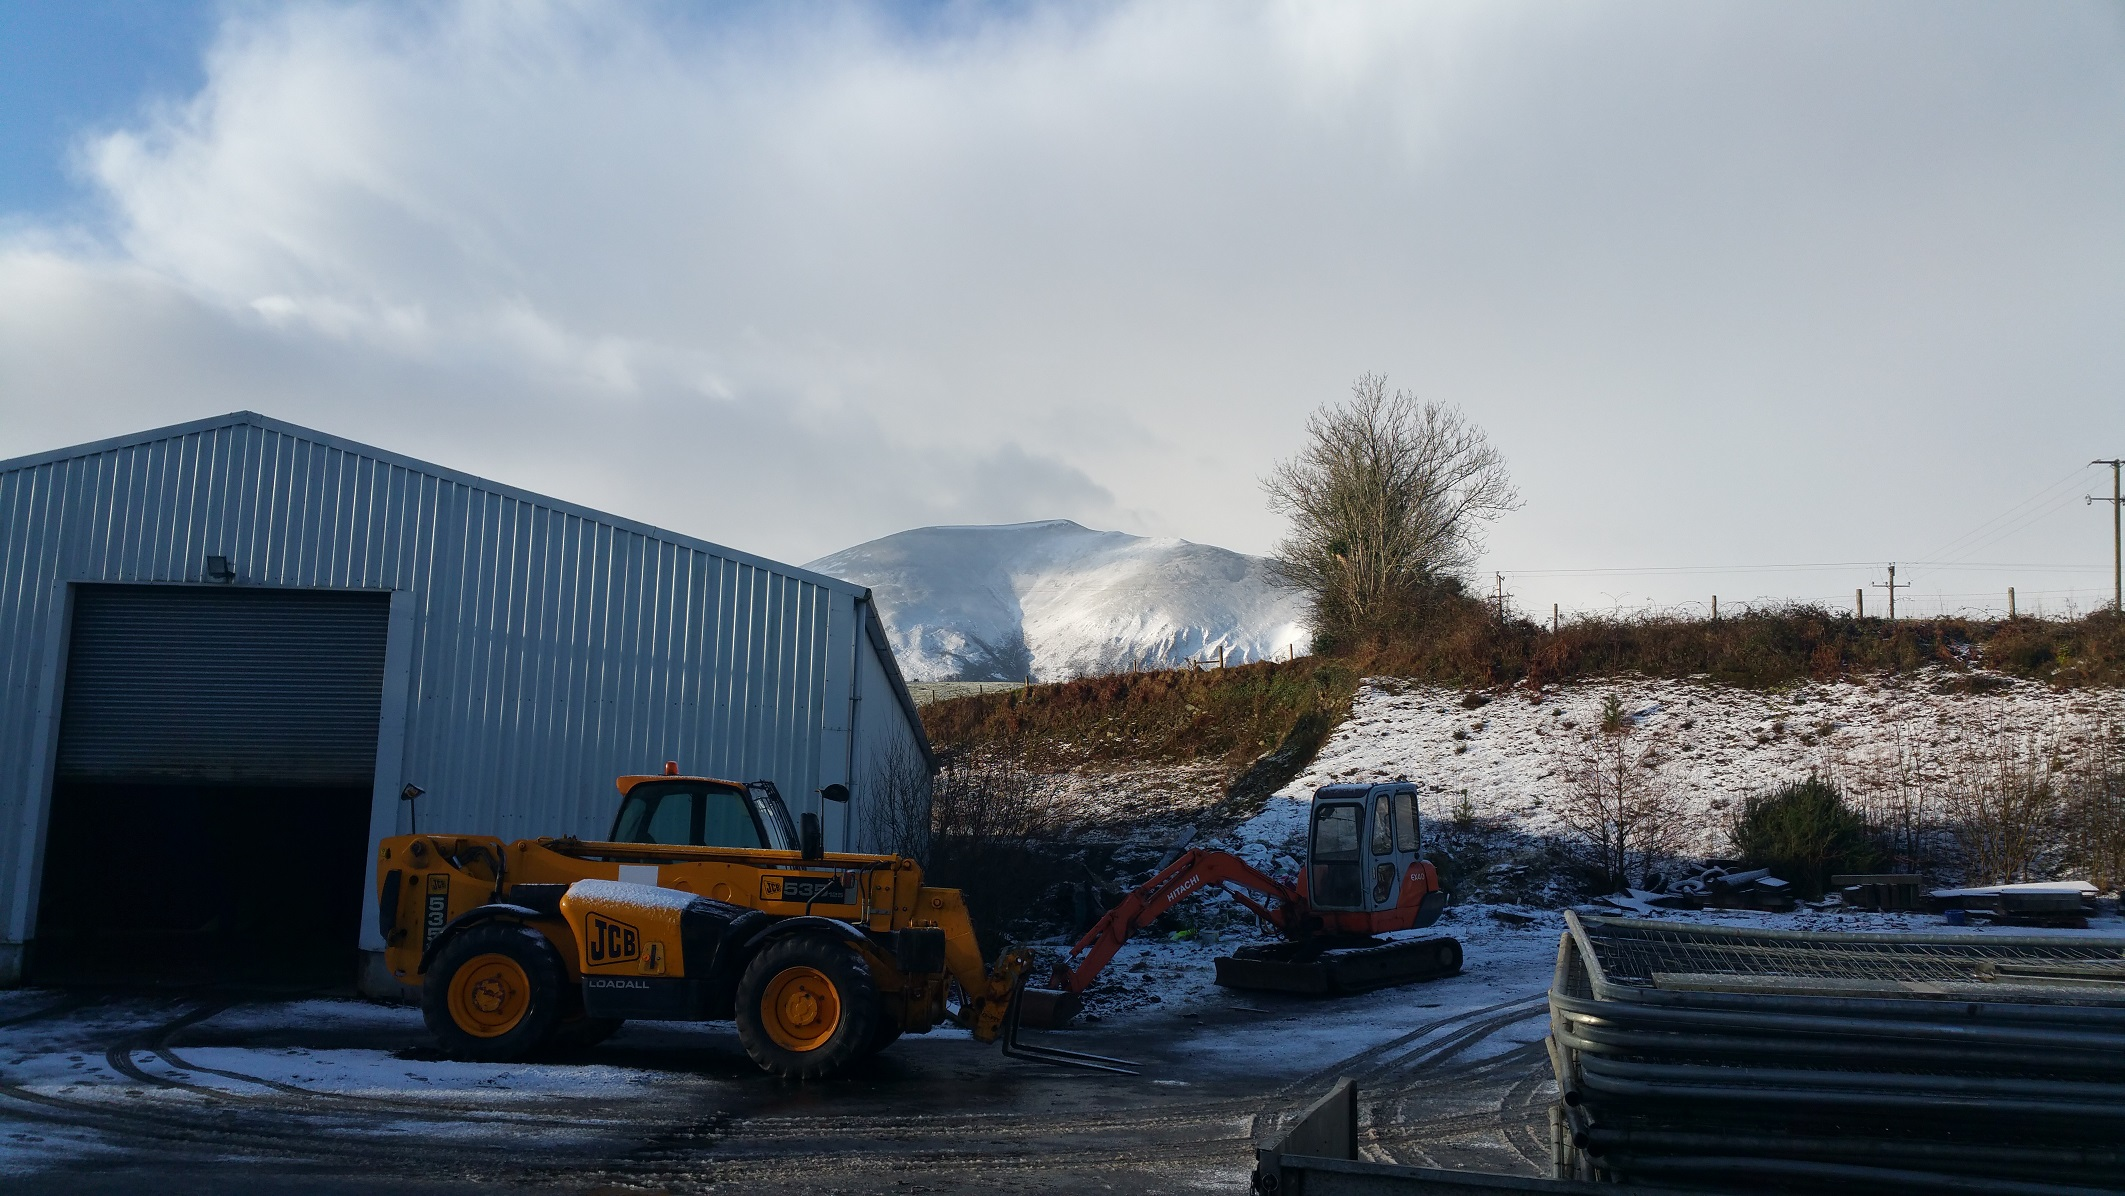 Nephin behind the distillery building